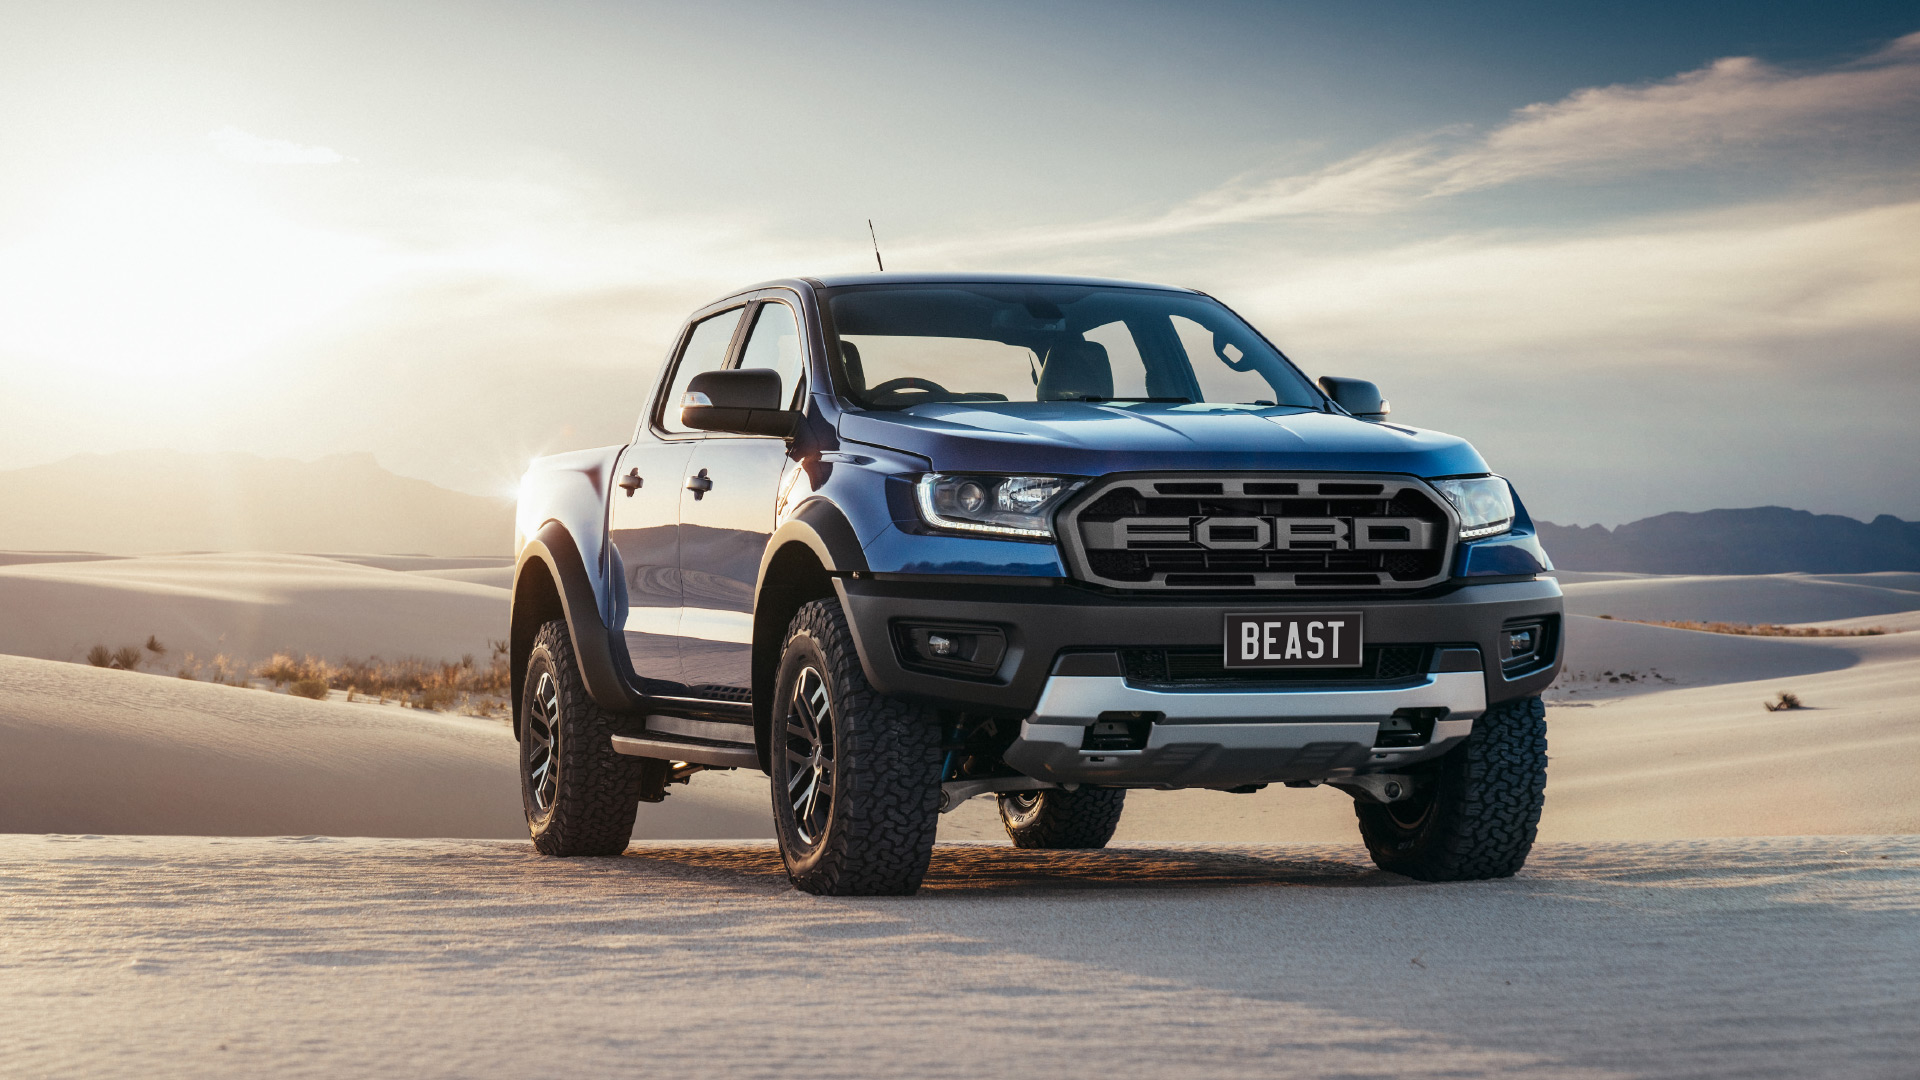 The Off-Road BEAST - 4WD Beast - 2020 Ford Ranger Raptor